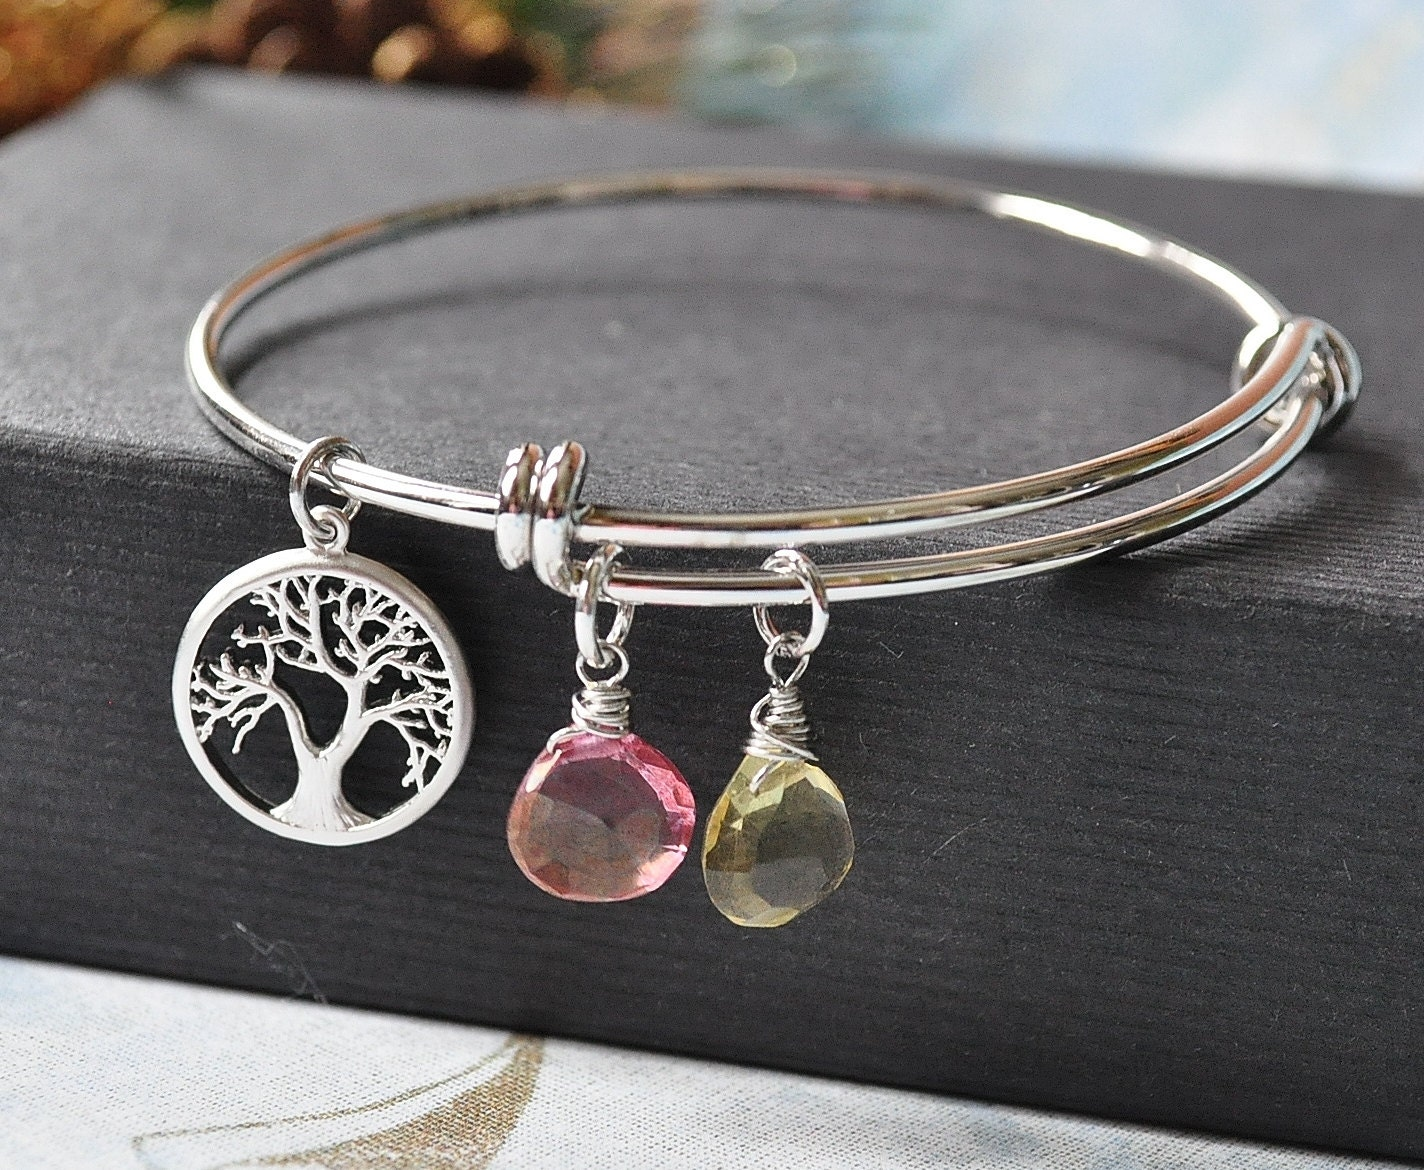 personalized birthstone and family tree charm bangle bracelet. Black Bedroom Furniture Sets. Home Design Ideas